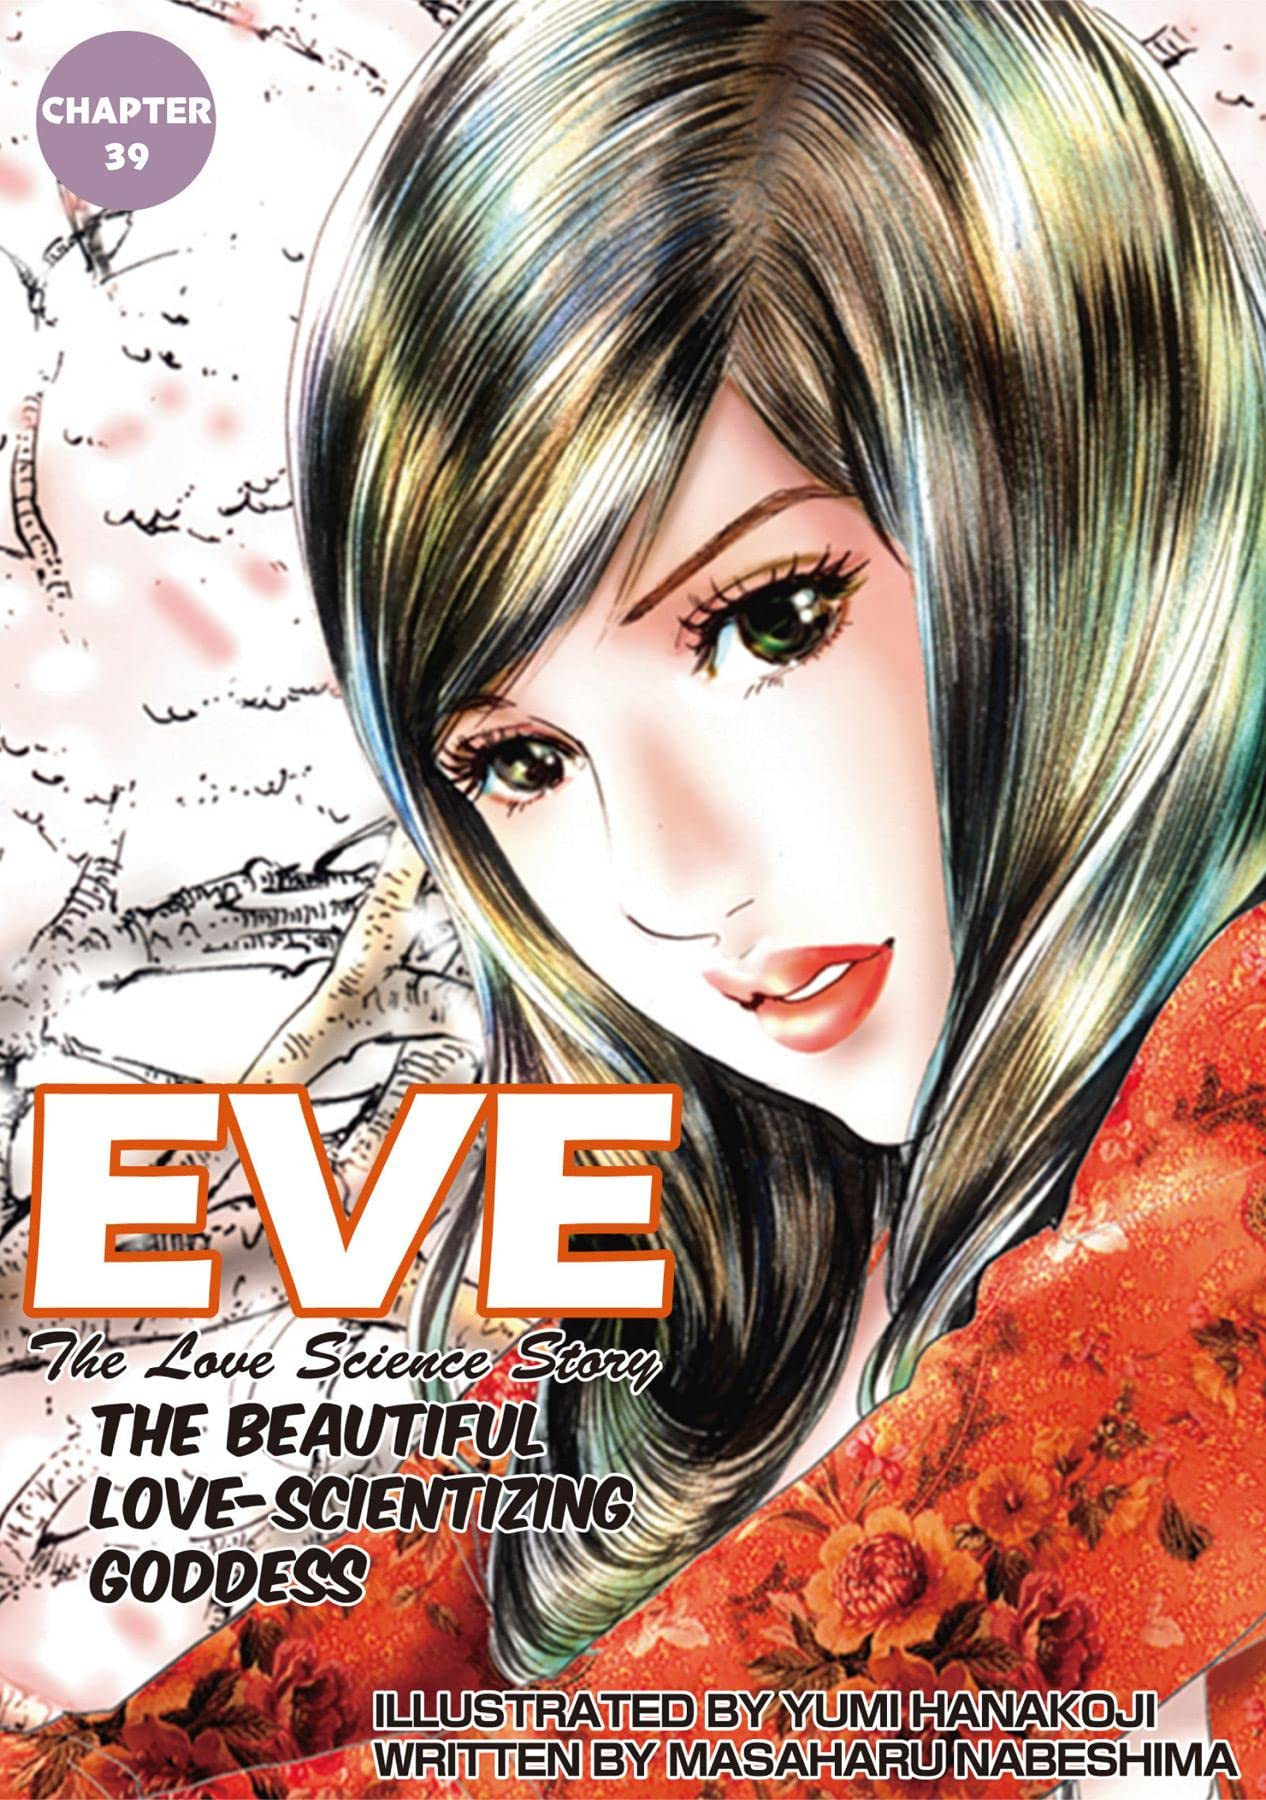 EVE:THE BEAUTIFUL LOVE-SCIENTIZING GODDESS #39